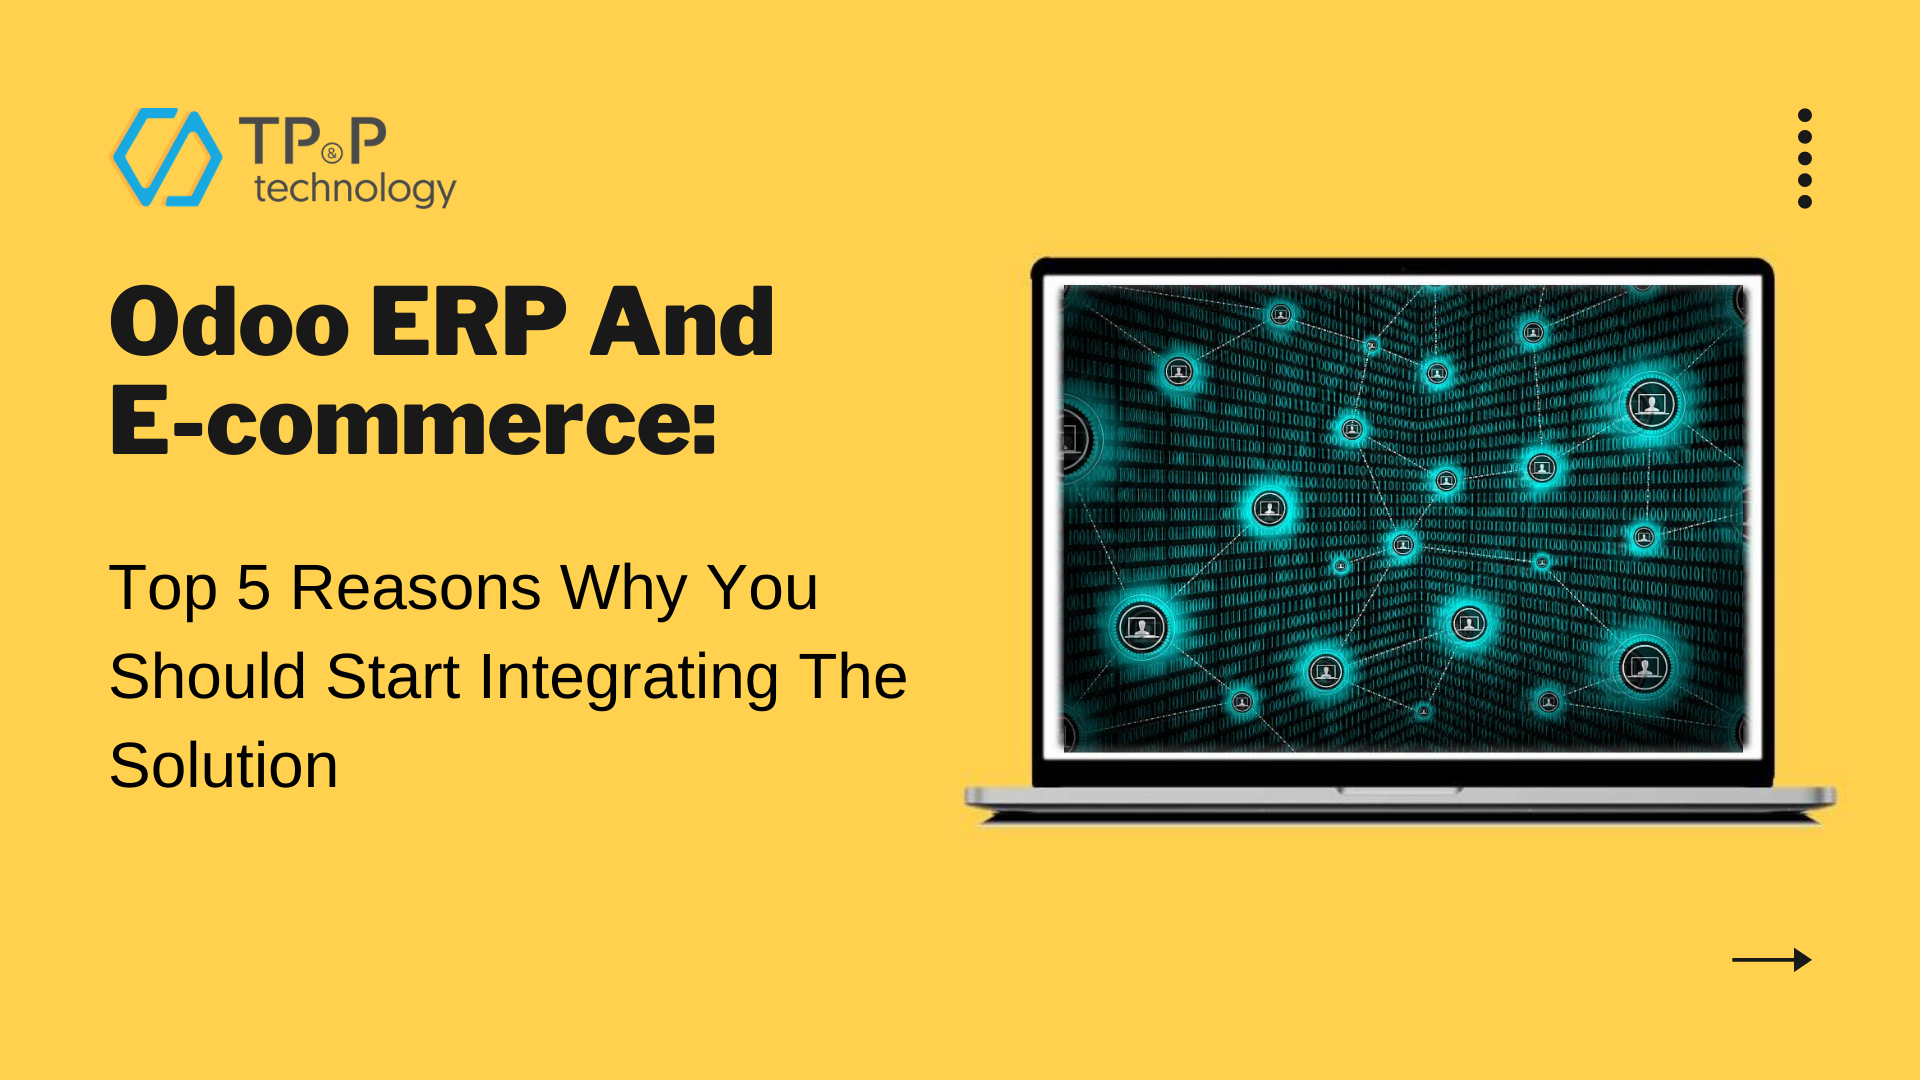 Odoo ERP And E-commerce: Top 5 Reasons Why You Should Start Integrating The Solution